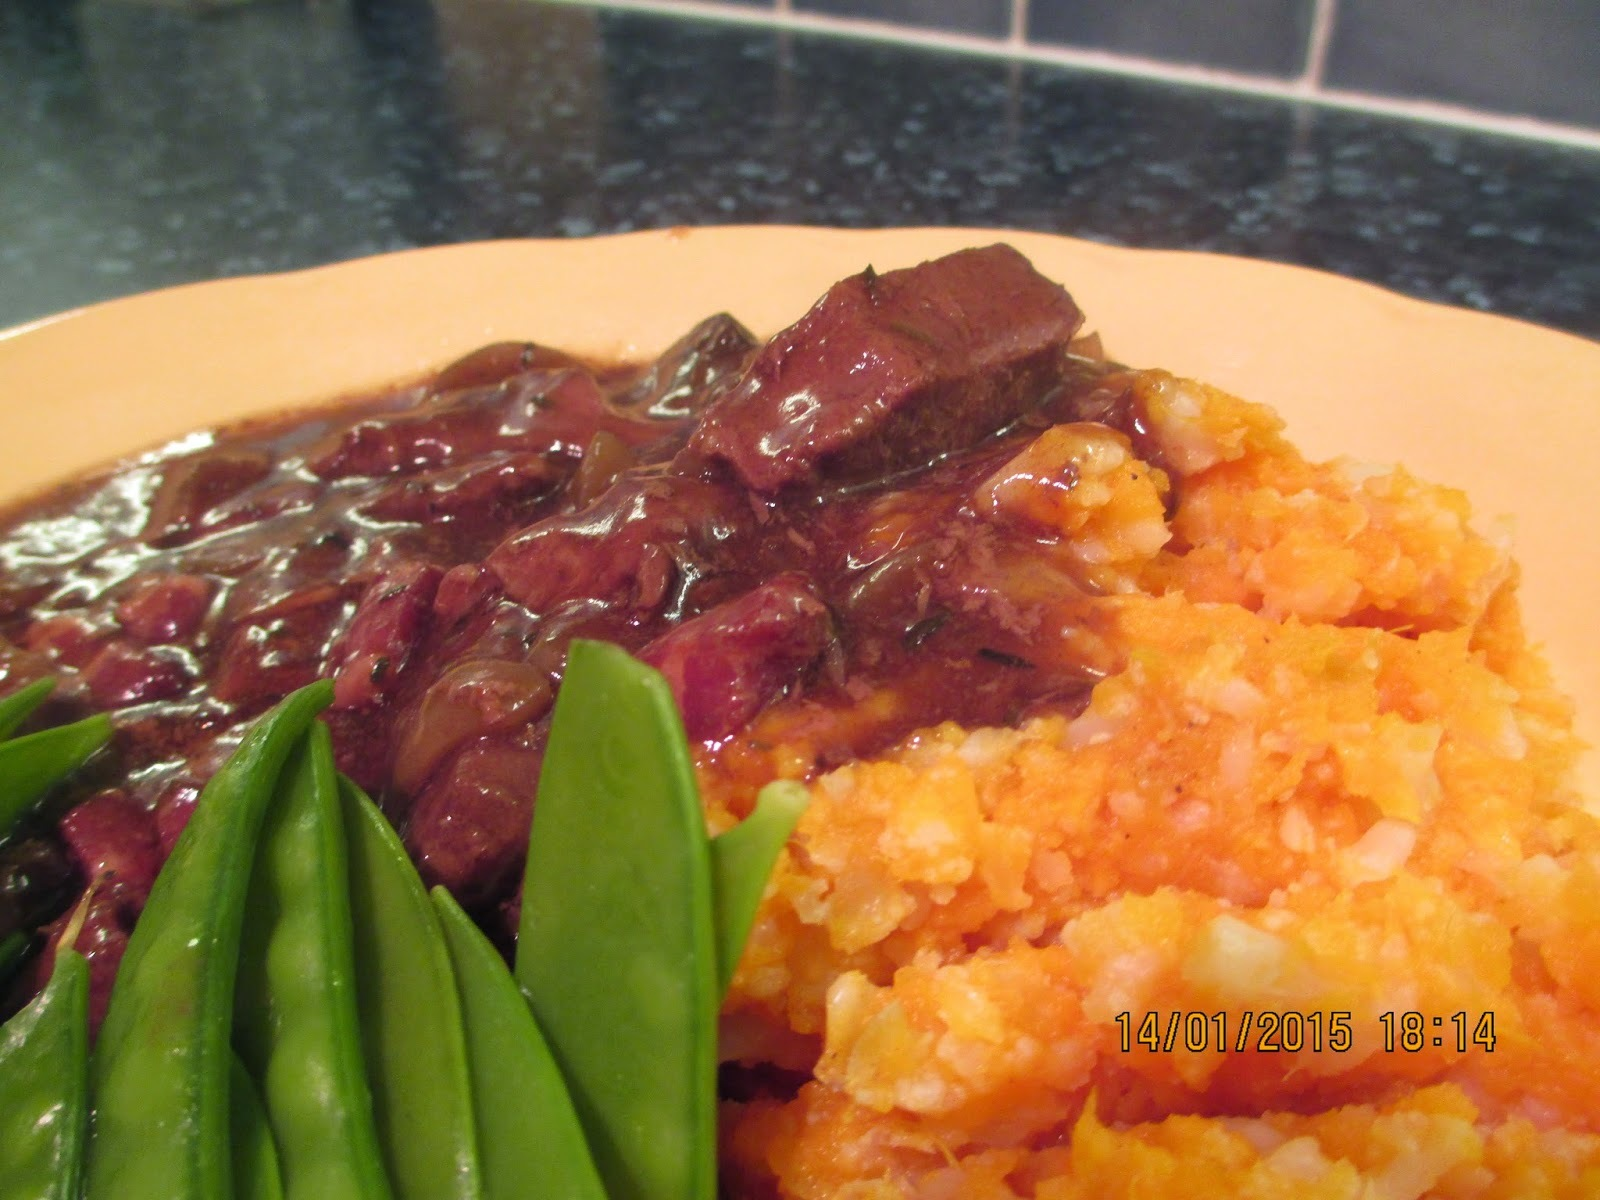 Luxury on a budget - Boeuf Bourguignon, Sweet potato and cauliflower mash with Manchego cheese.